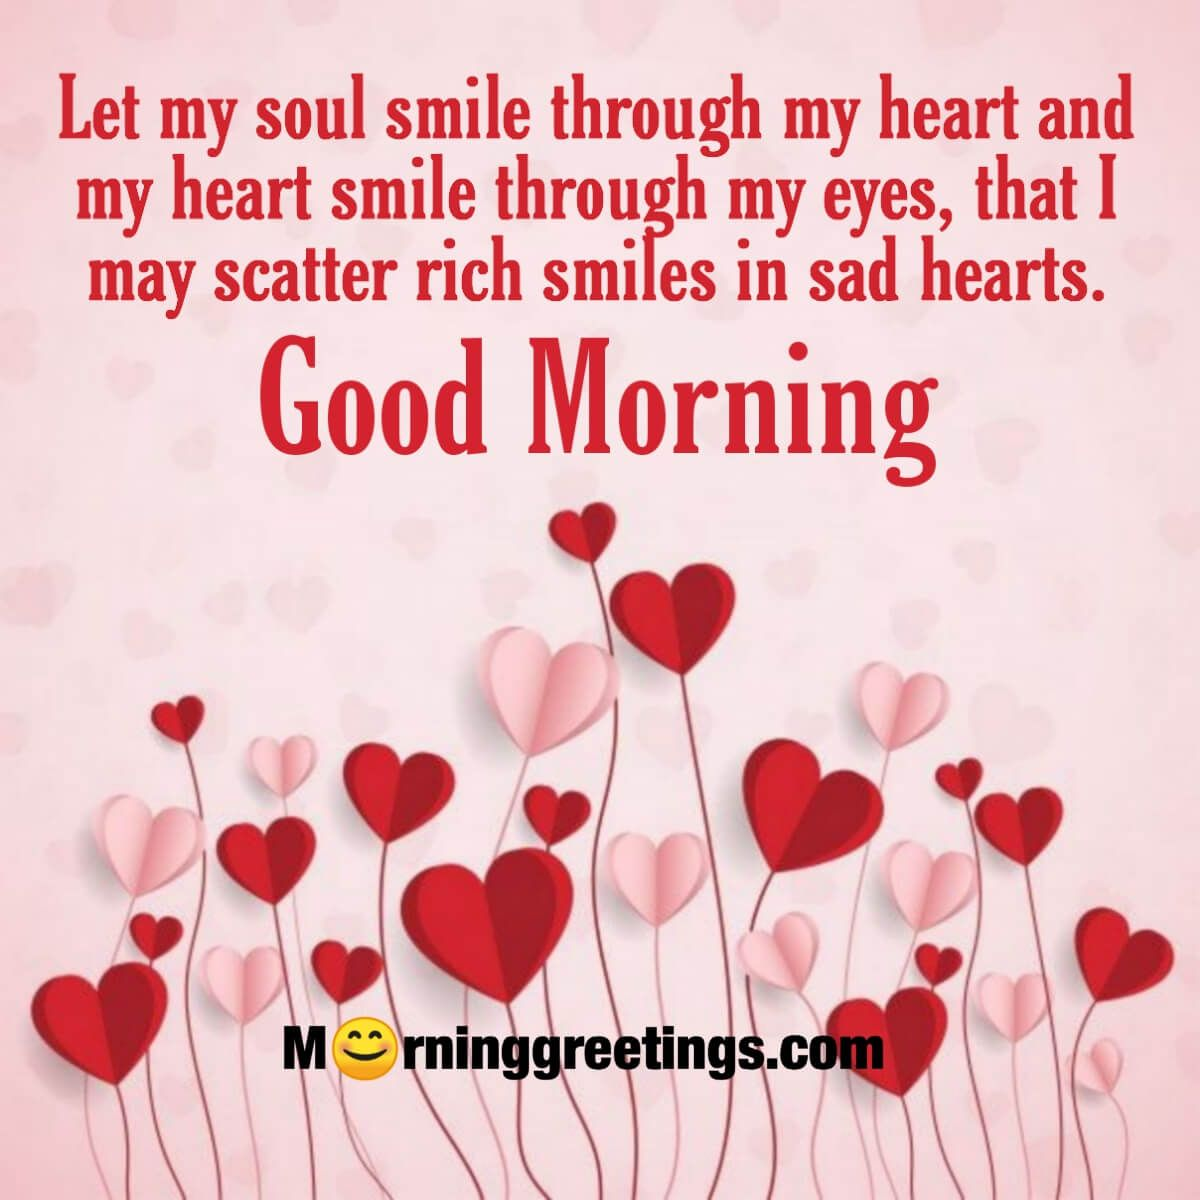 15 Good Morning Heart Quotes Images Morning Greetings Morning Quotes And Wishes Images In 2021 Heart Quotes Good Morning Cards Morning Quotes